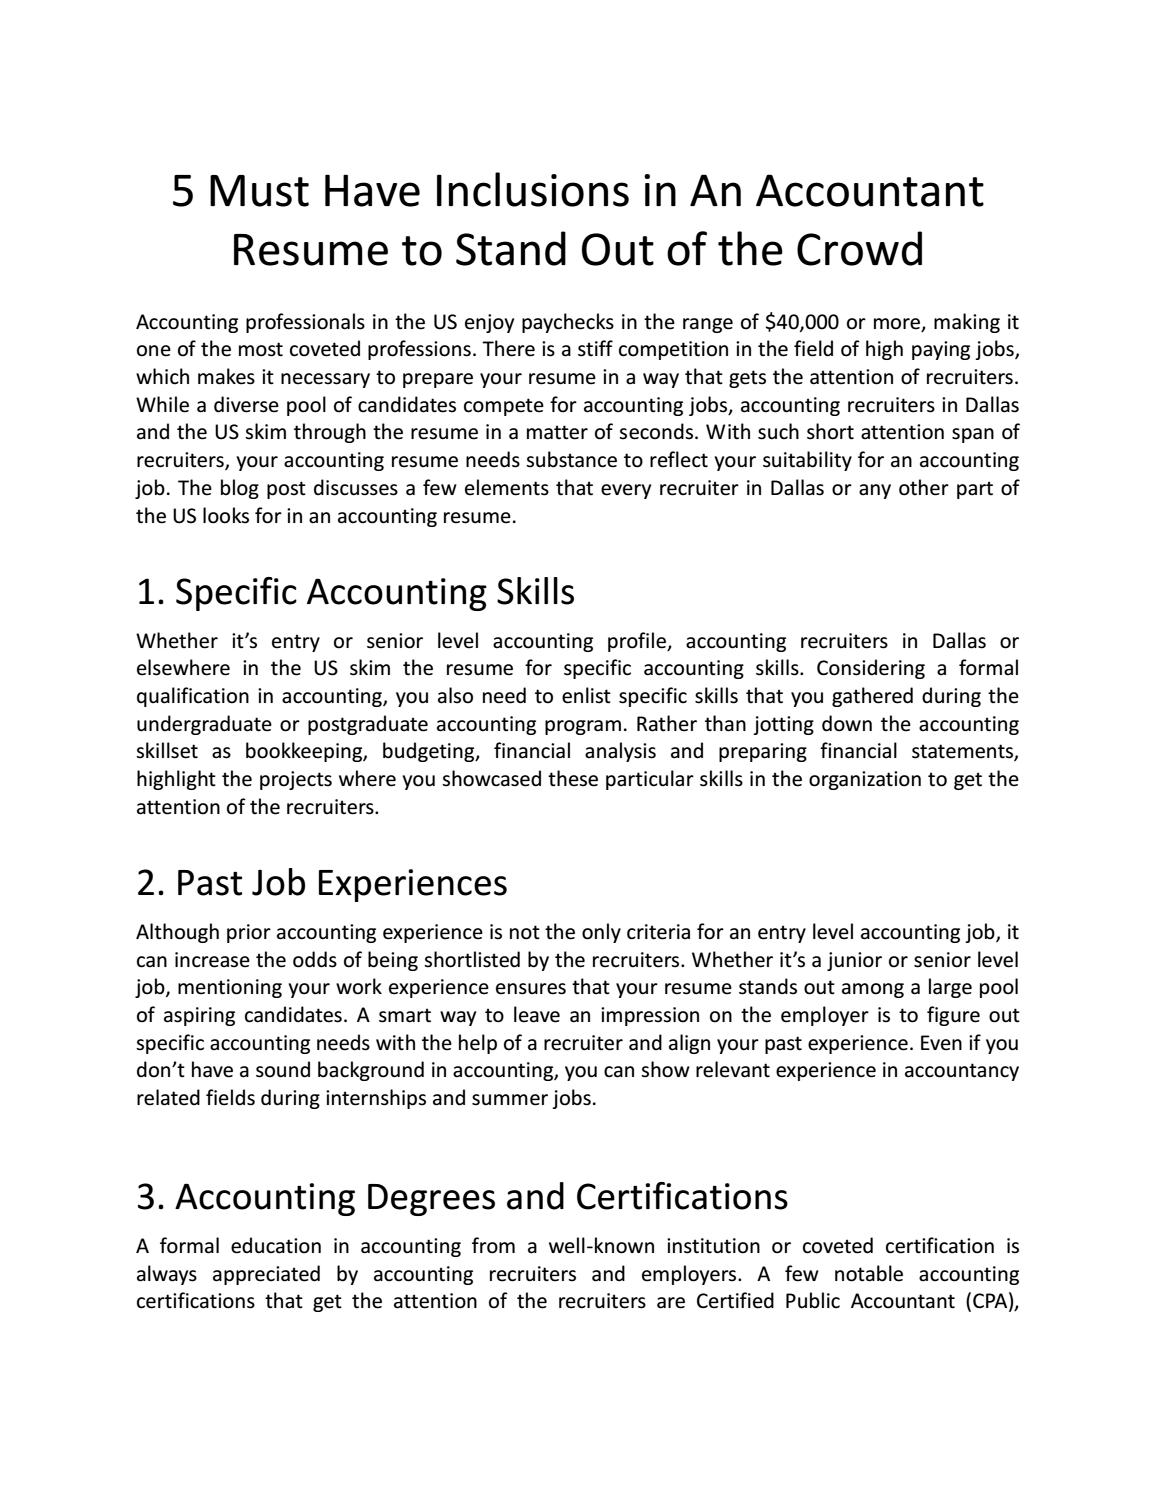 5 Must Have Inclusions In An Accountant Resume To Stand Out Of The